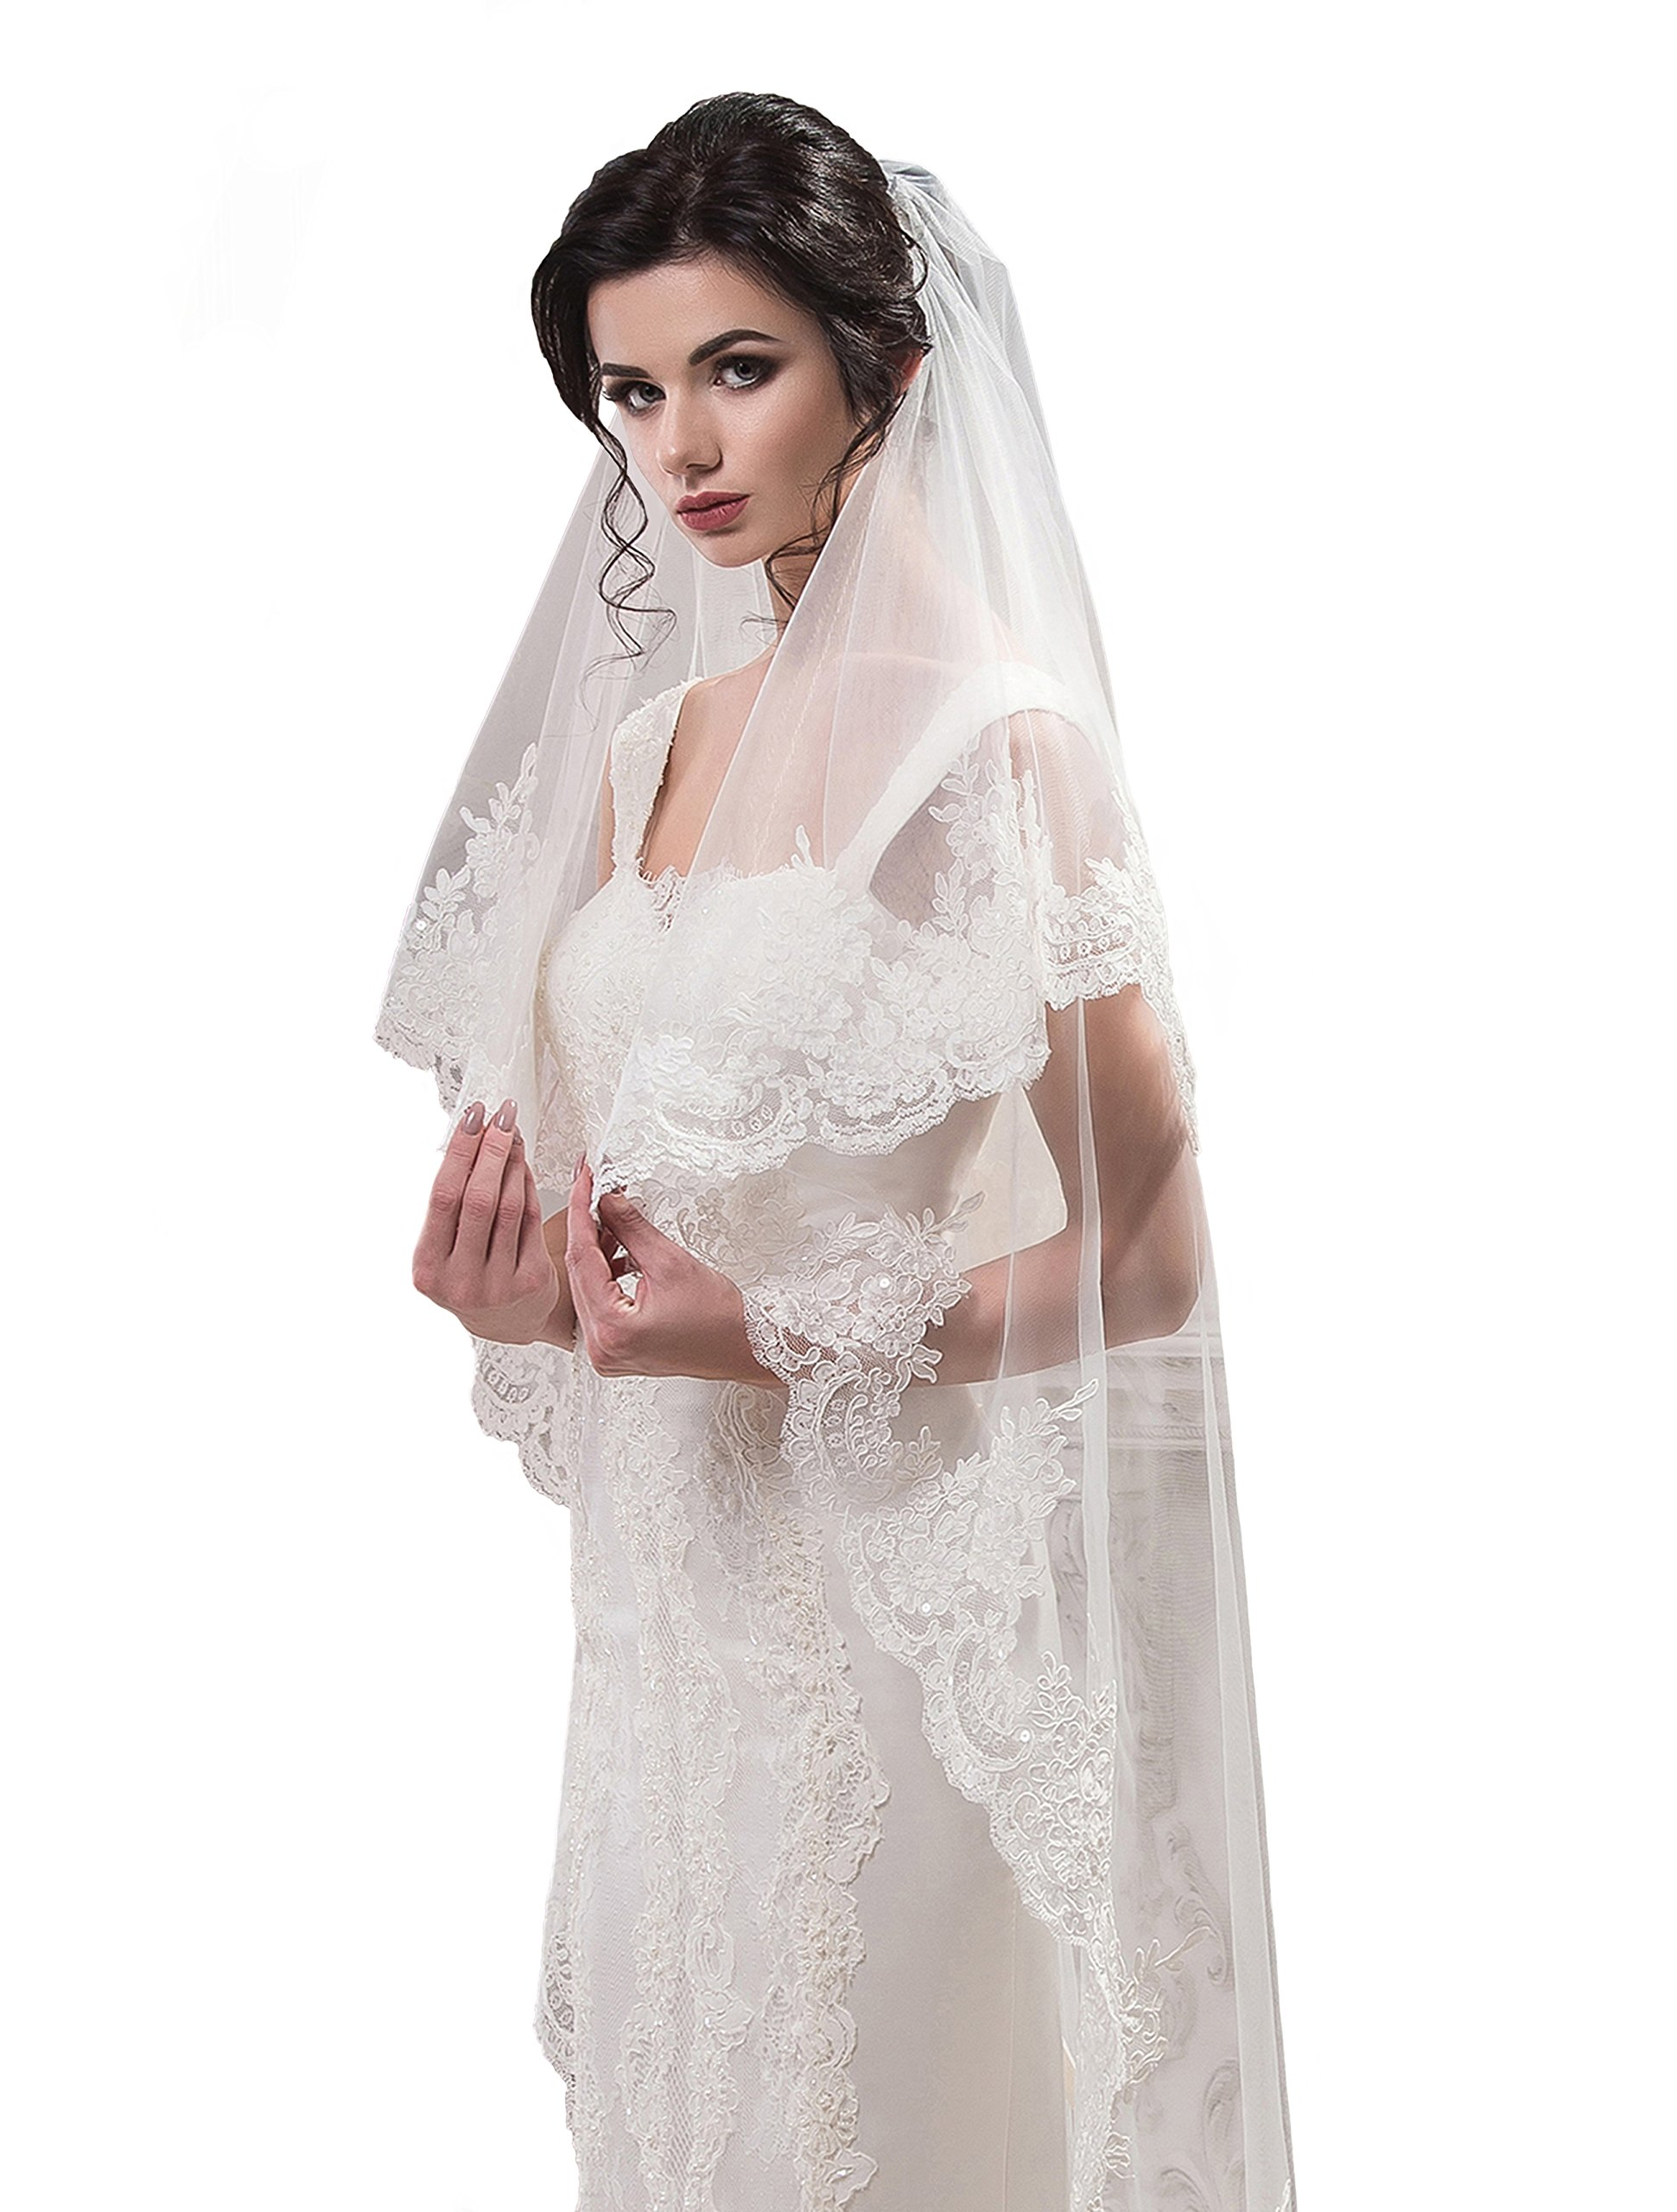 "Bridal Veil Carrie from NYC Bride collection (short 30"", ivory)"